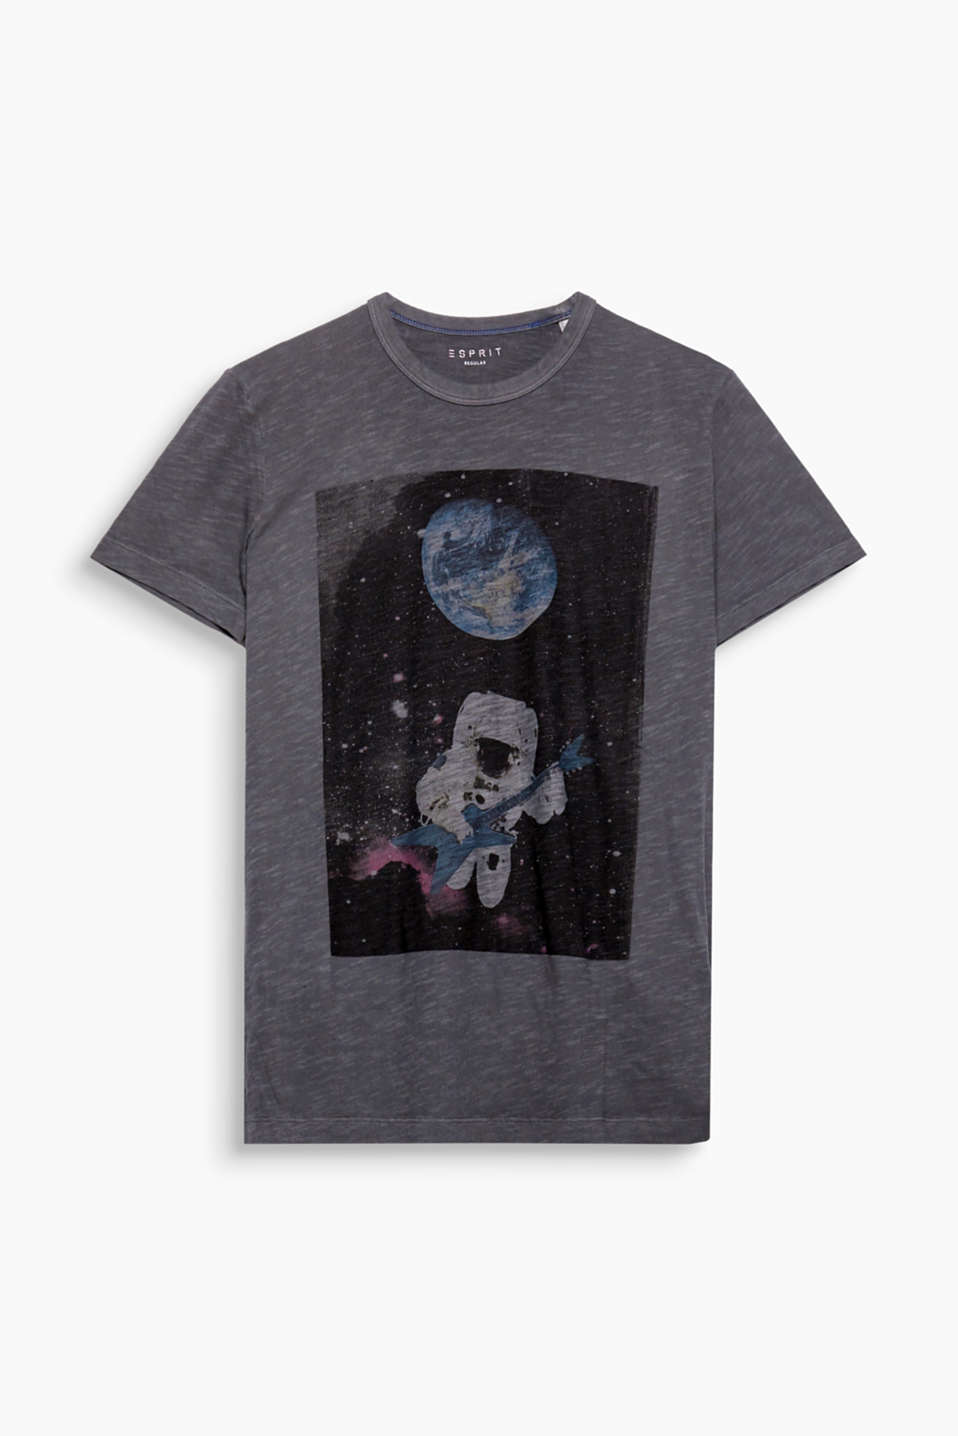 The space print on the front gives this cotton T-shirt its individual flair.